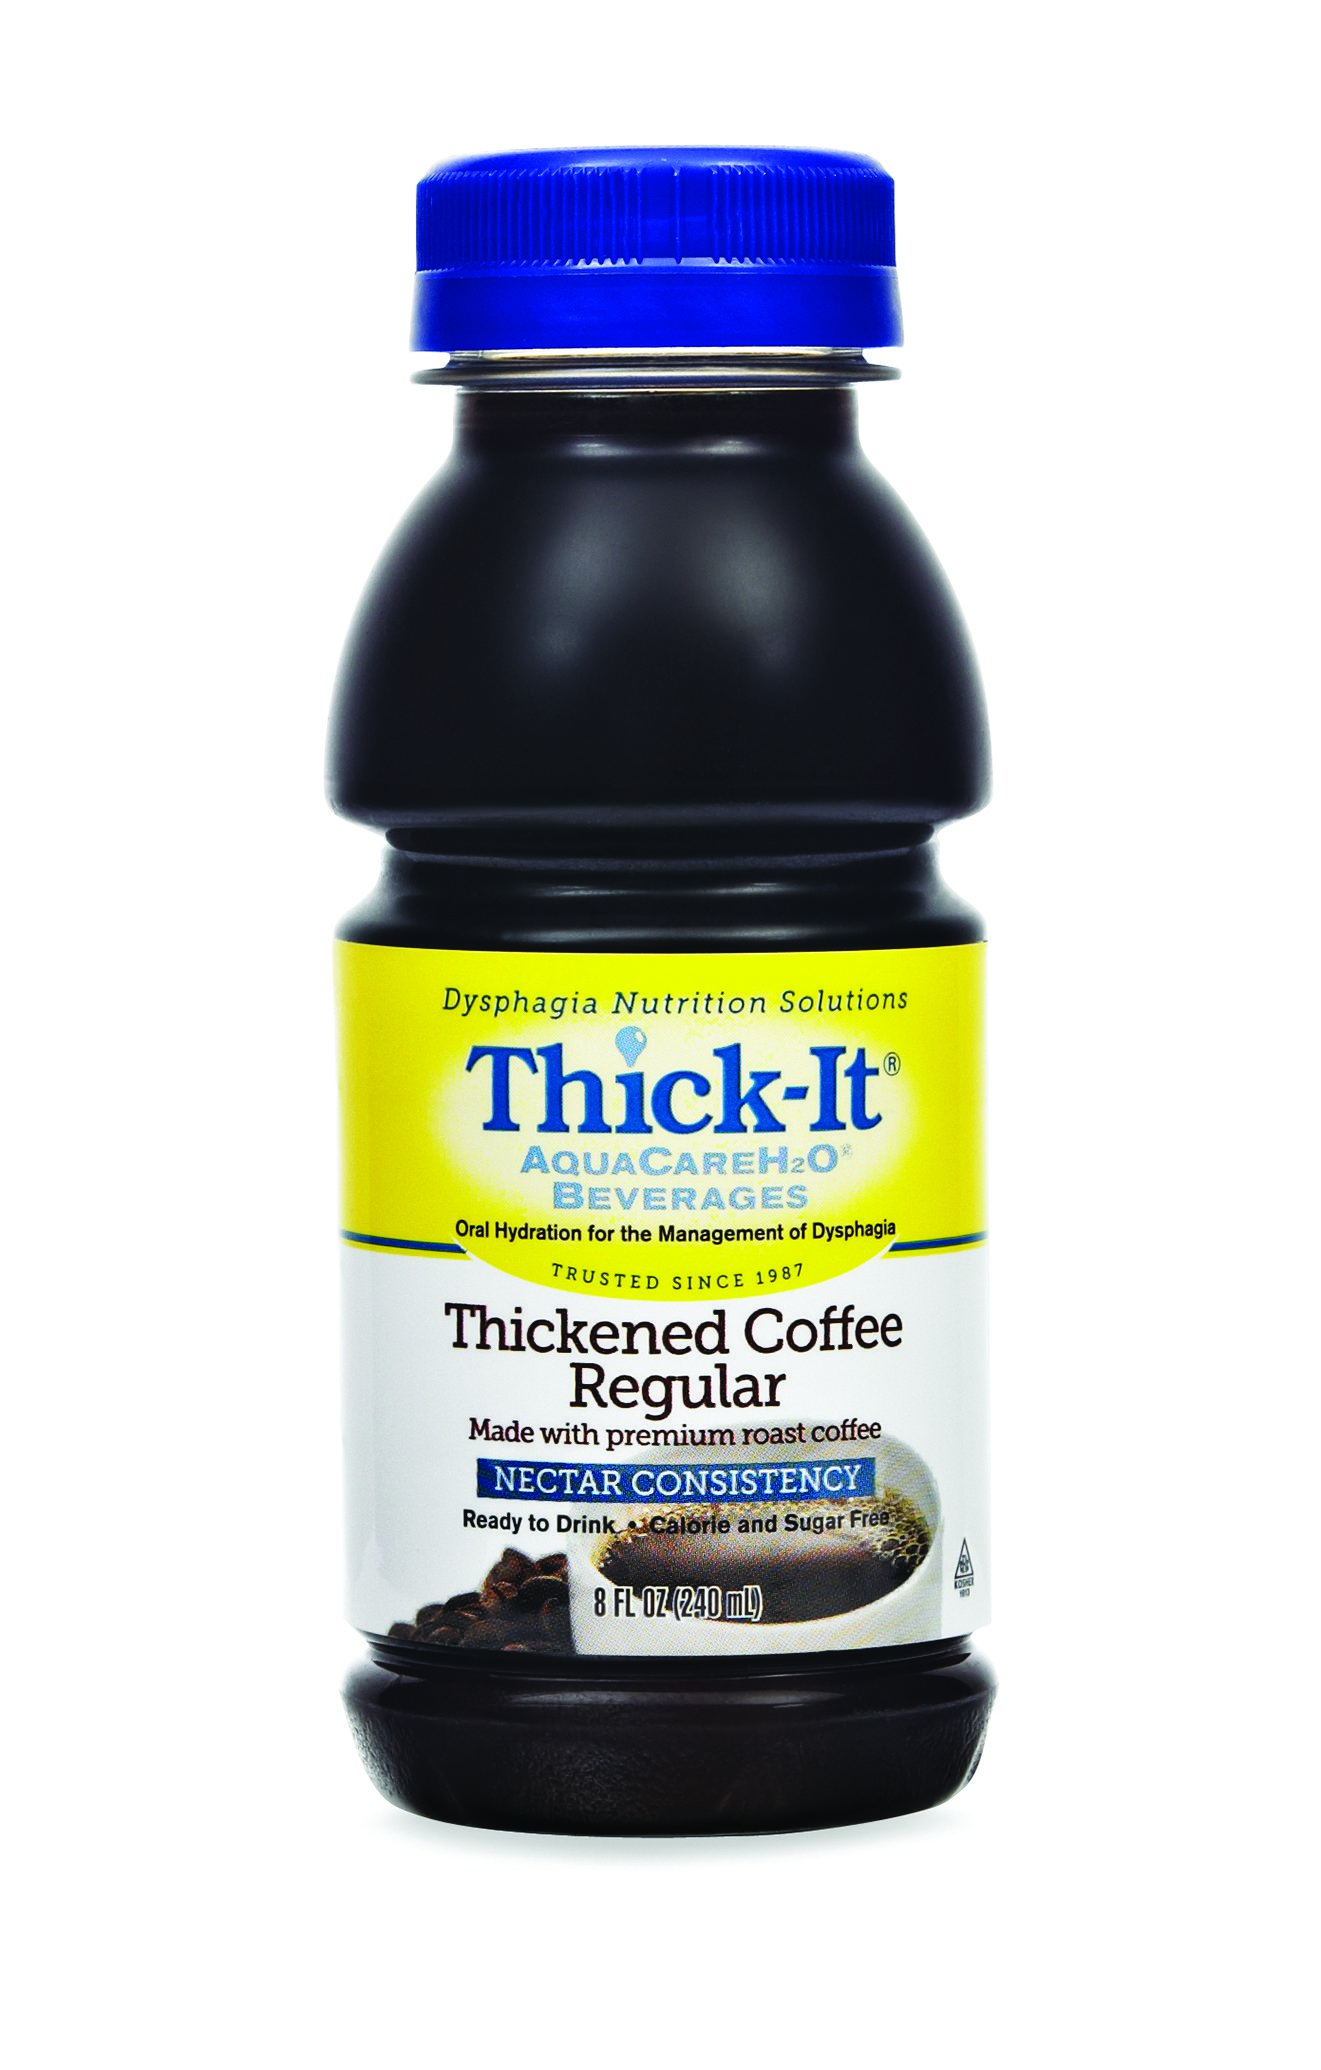 Thick-It AquaCareH2O Thickened Beverage 8 oz. Bottle Coffee Ready to Use Nectar Consistency, B467-L9044 - EACH